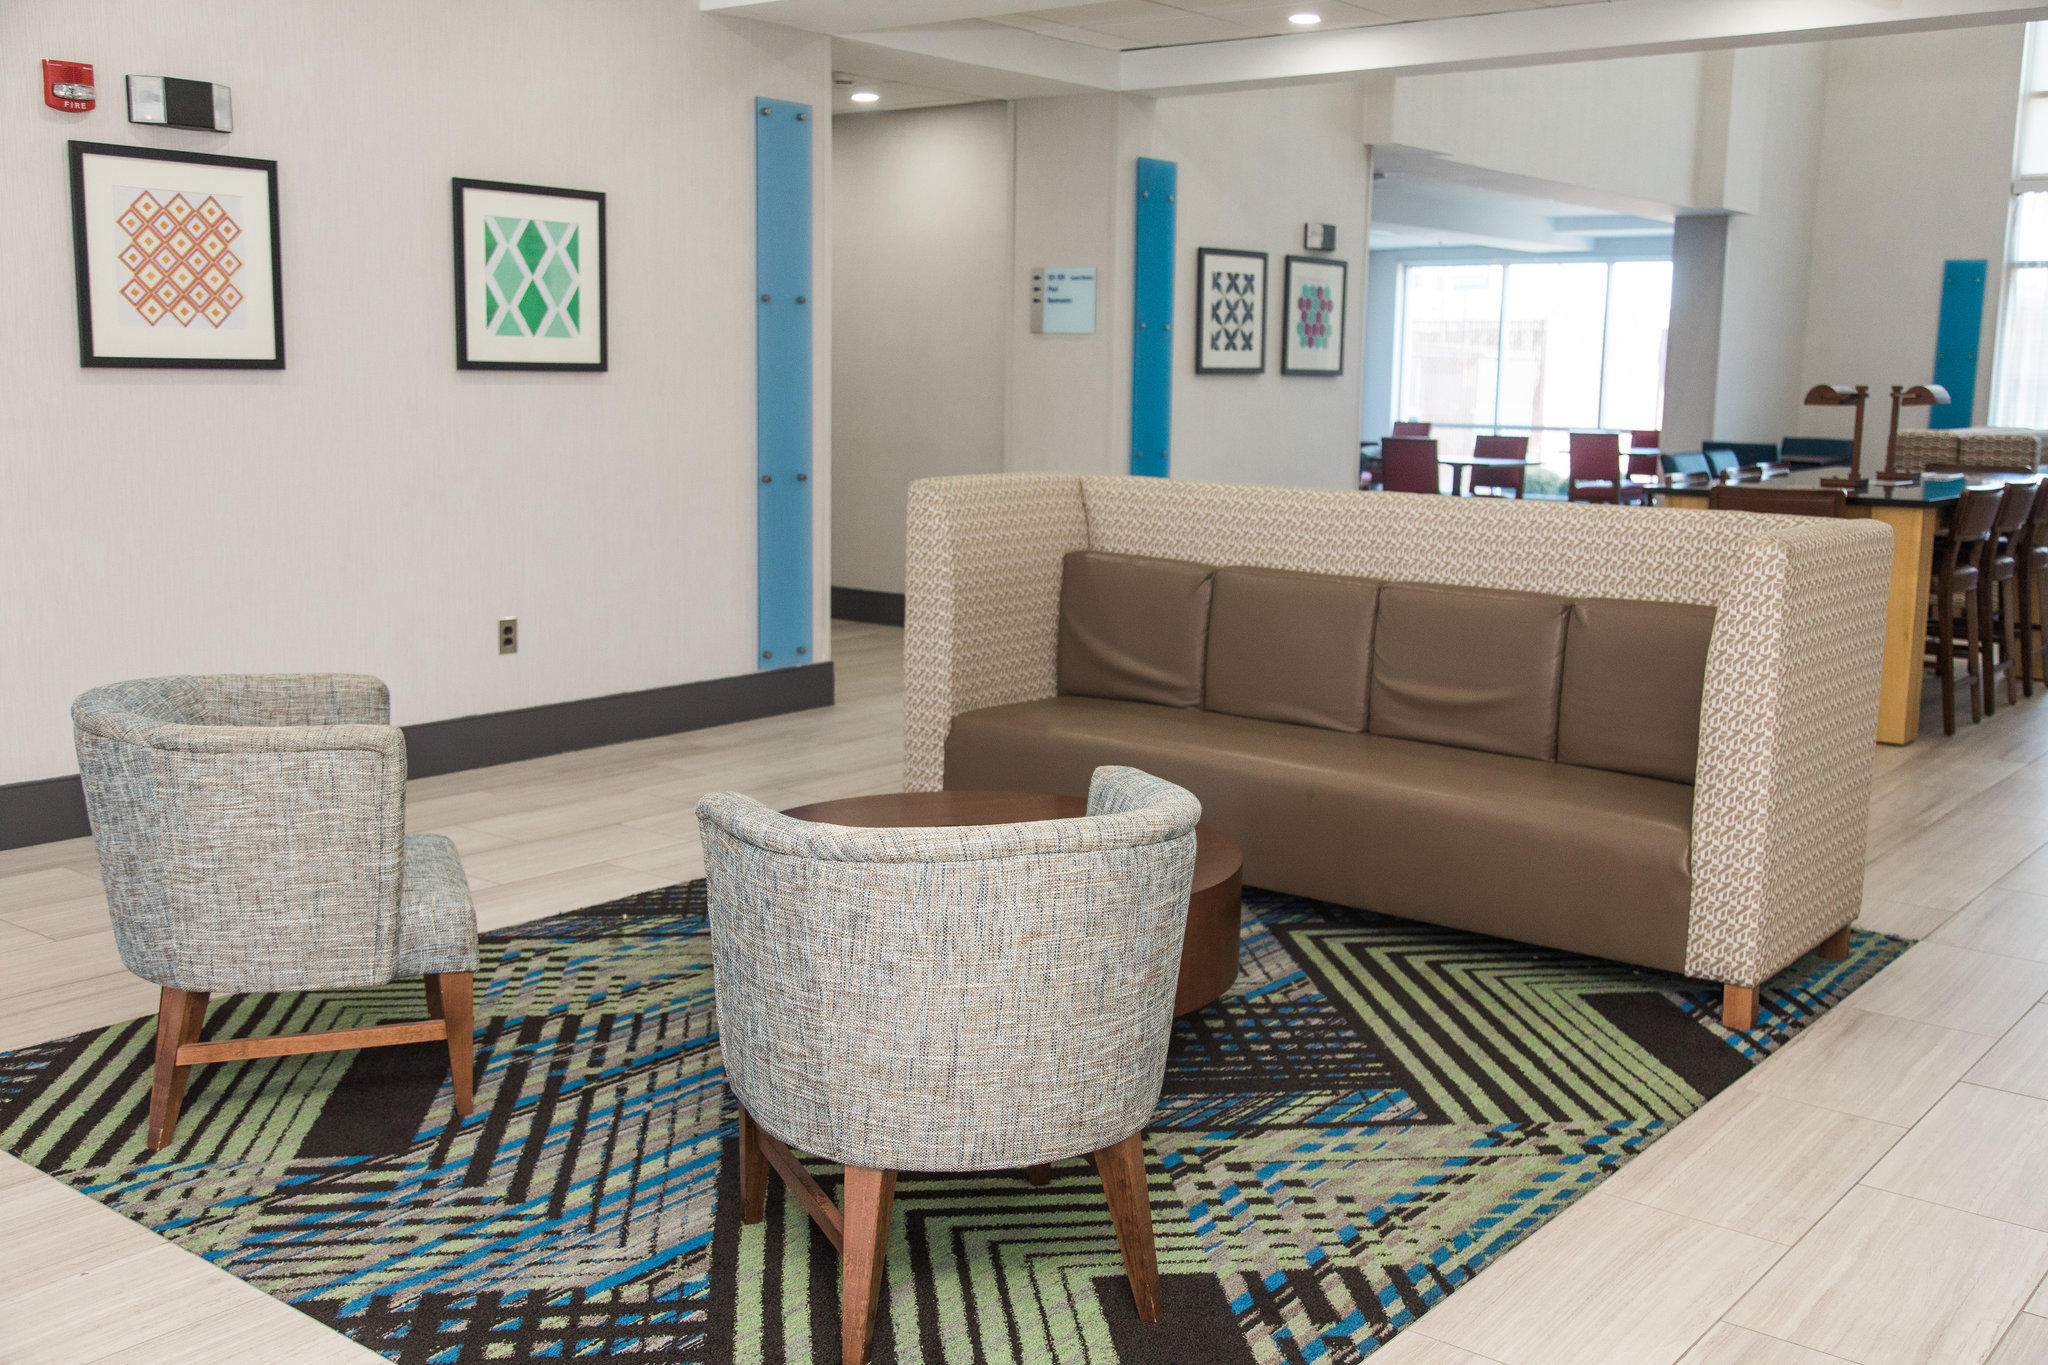 Holiday Inn Express & Suites Columbia-Fort Jackson, an IHG Hotel